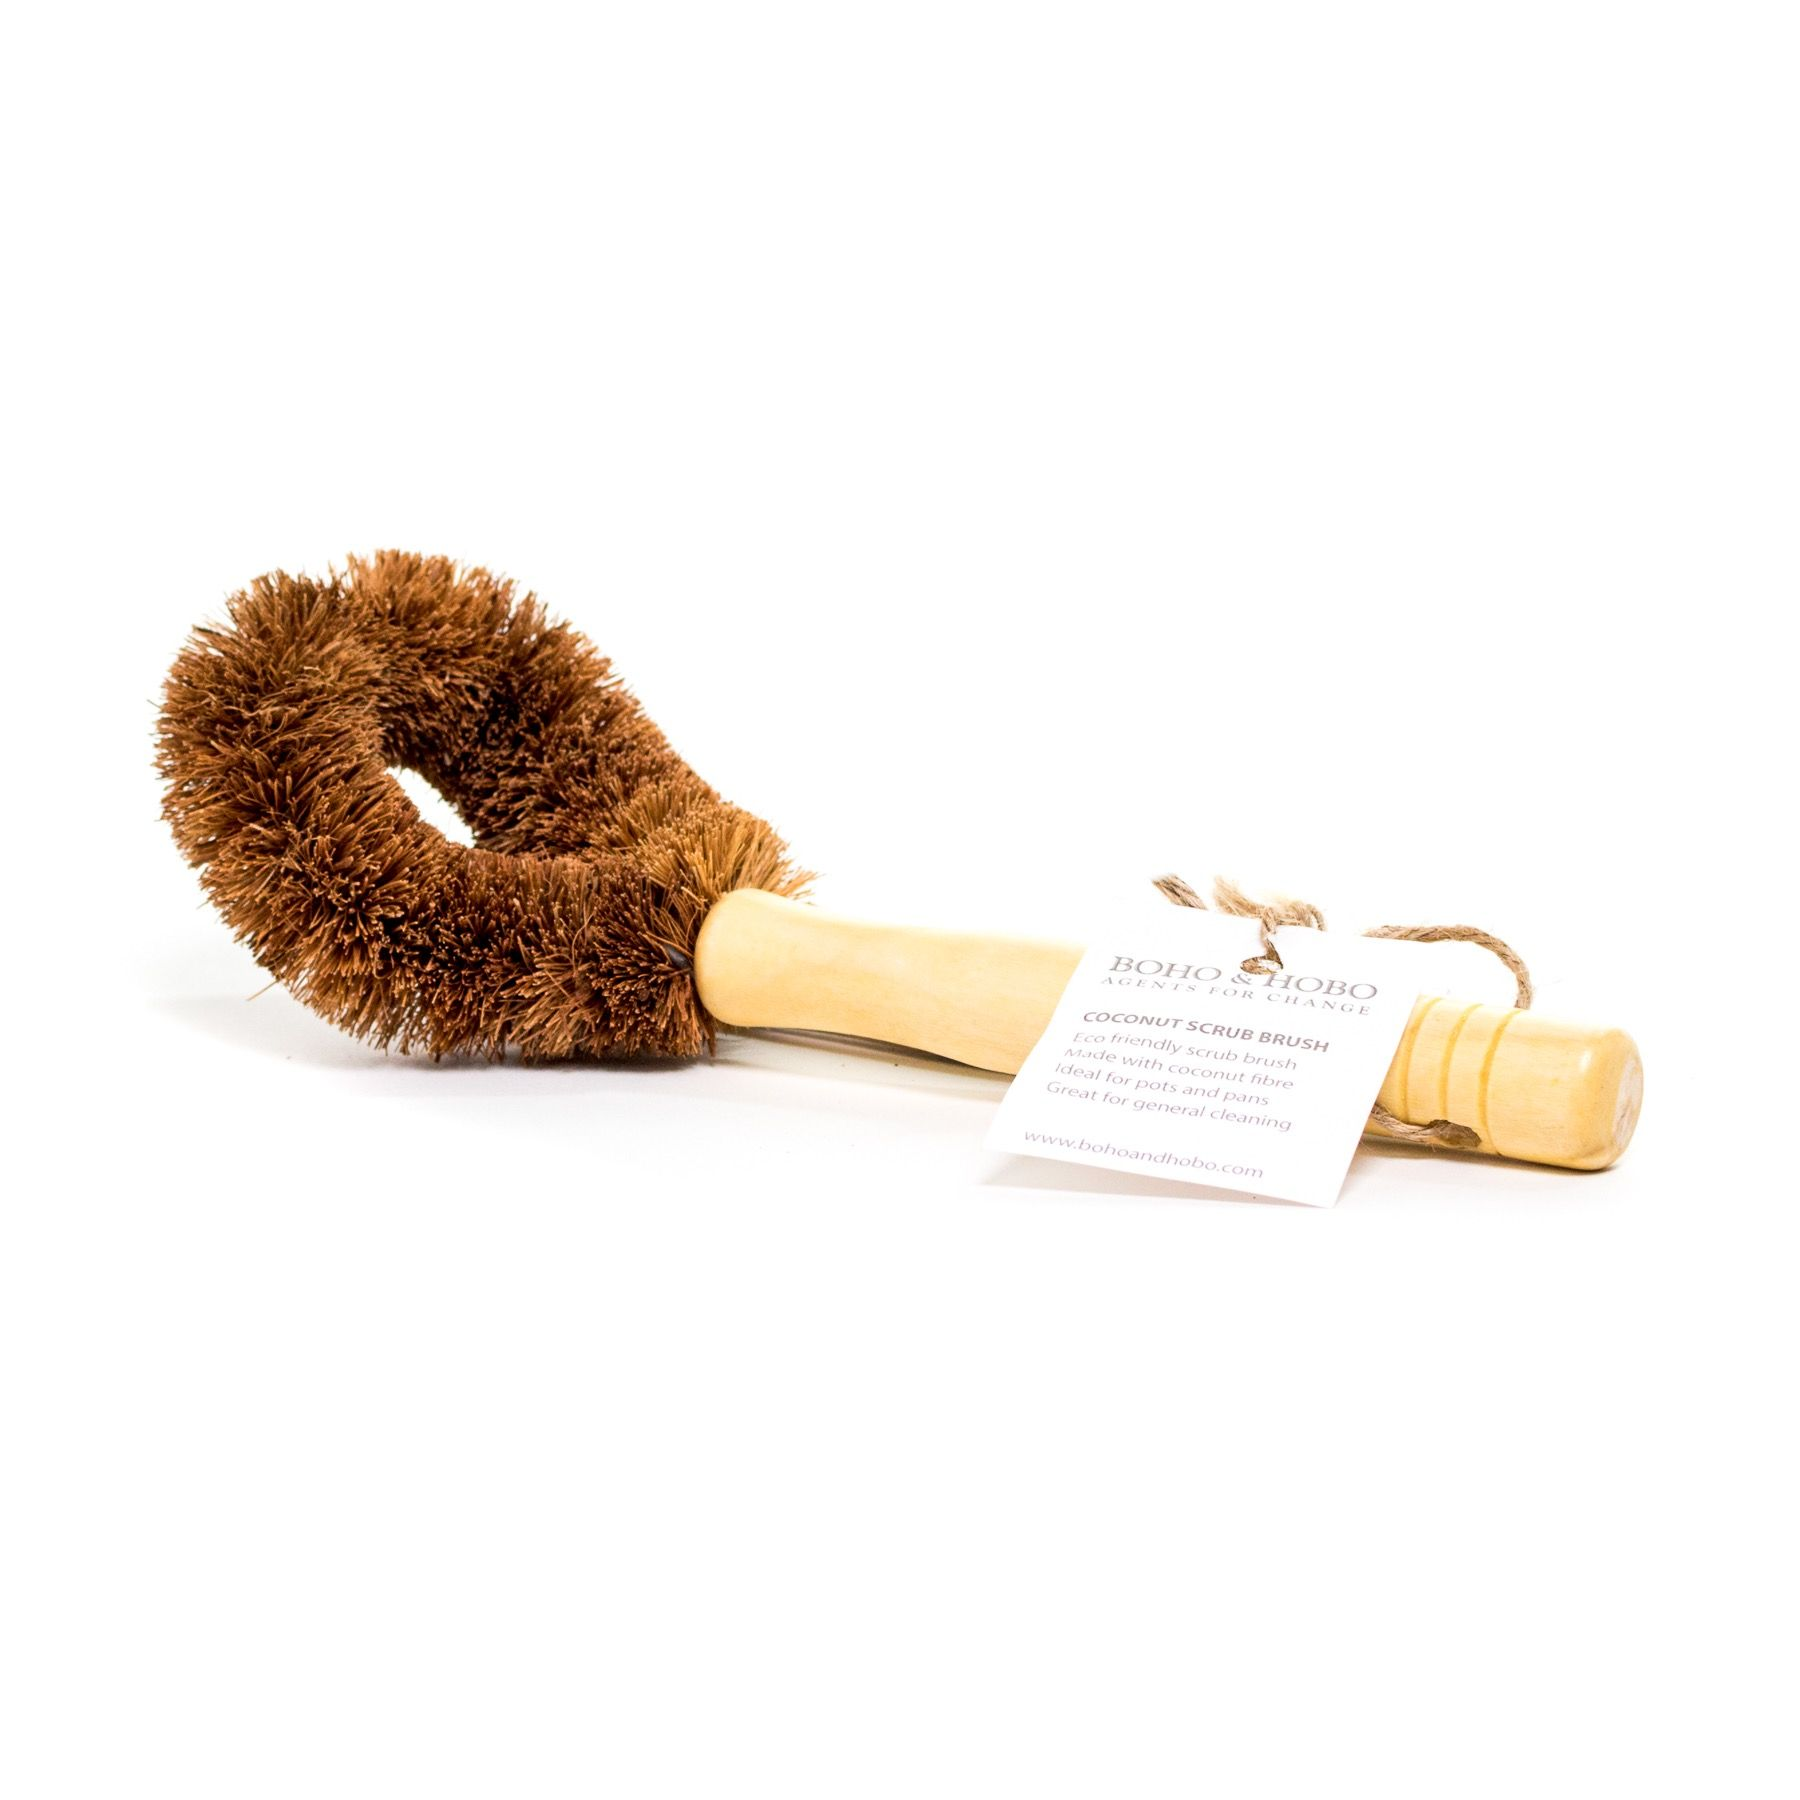 Eco friendly Coconut Scrub Brush is a game changer in the